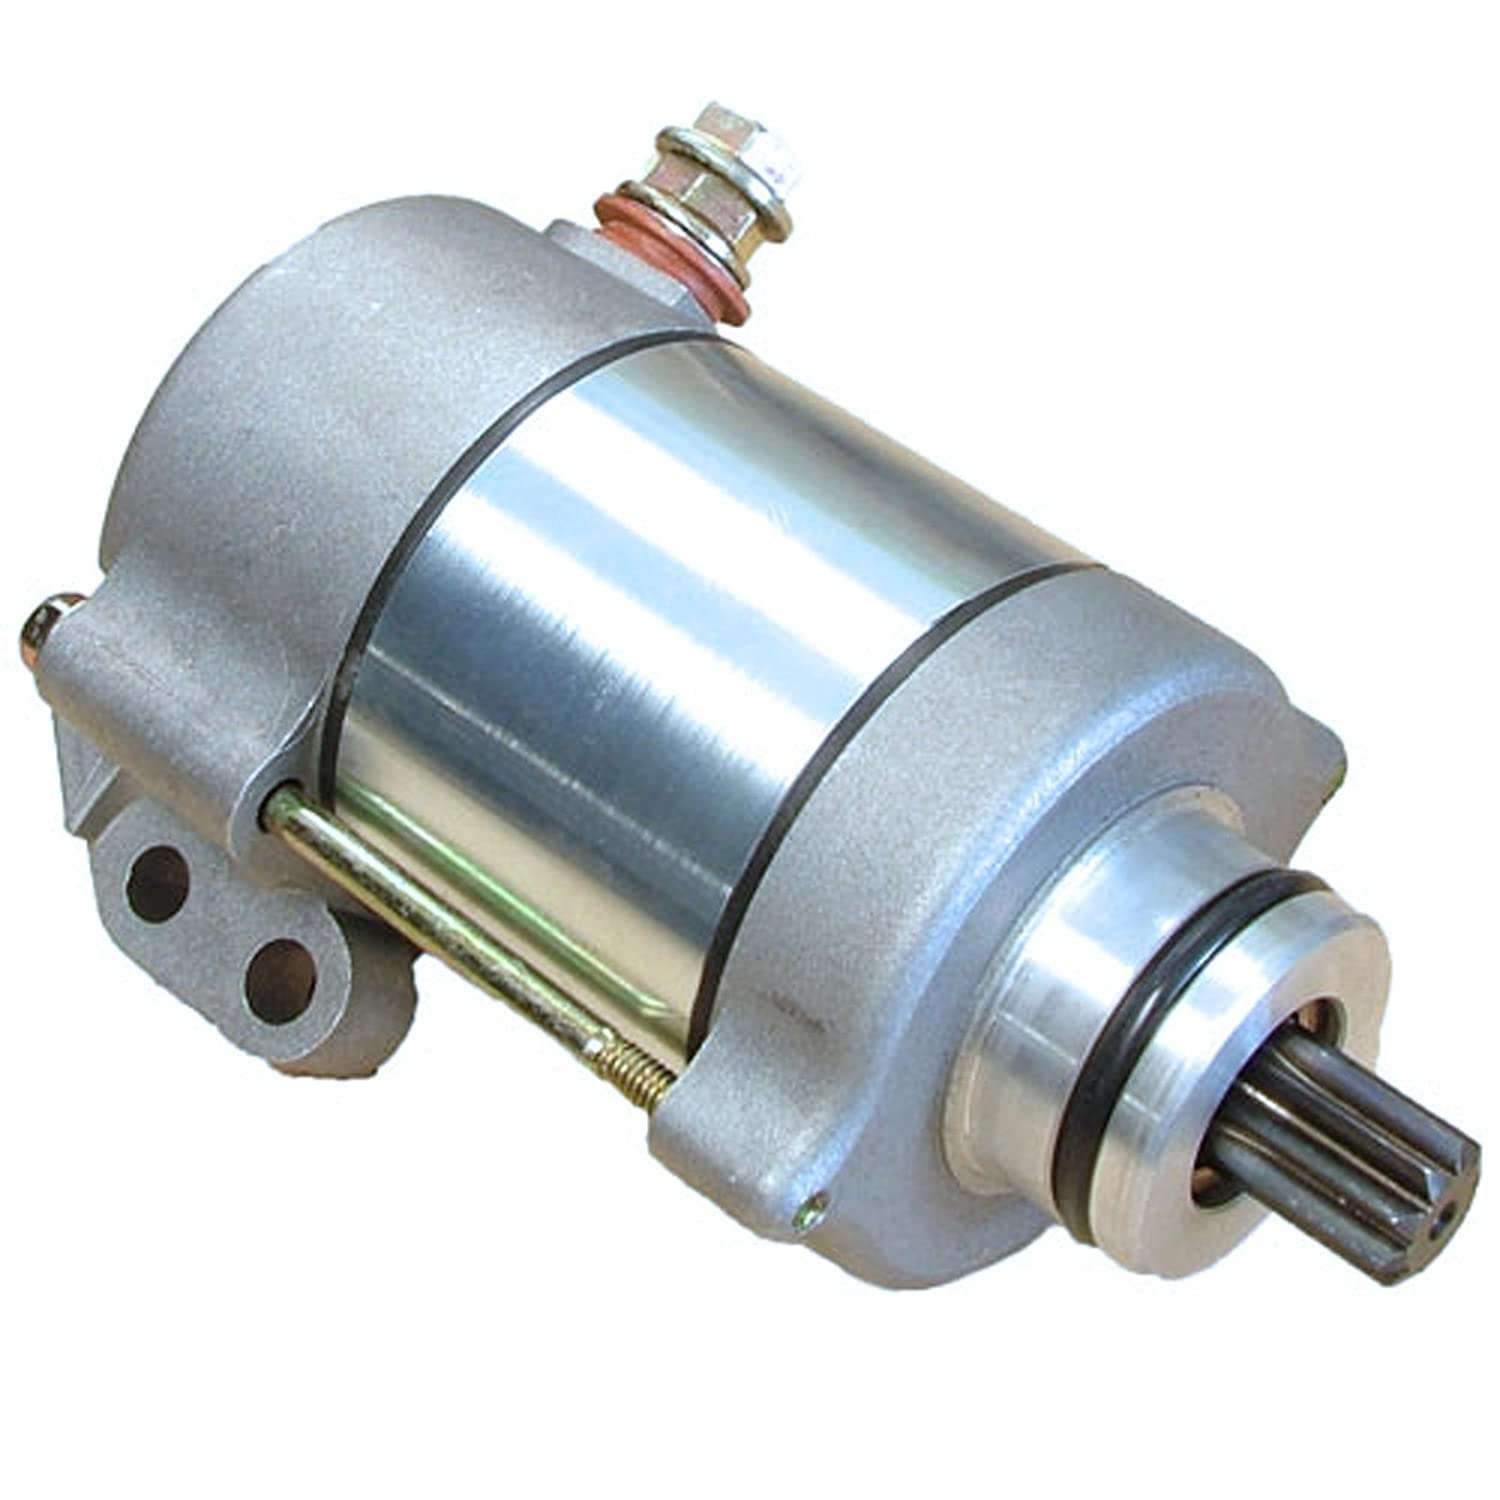 Amazon.com: New Starter For KTM Motorcycle 2008 2009 2010 2011 2012 ...